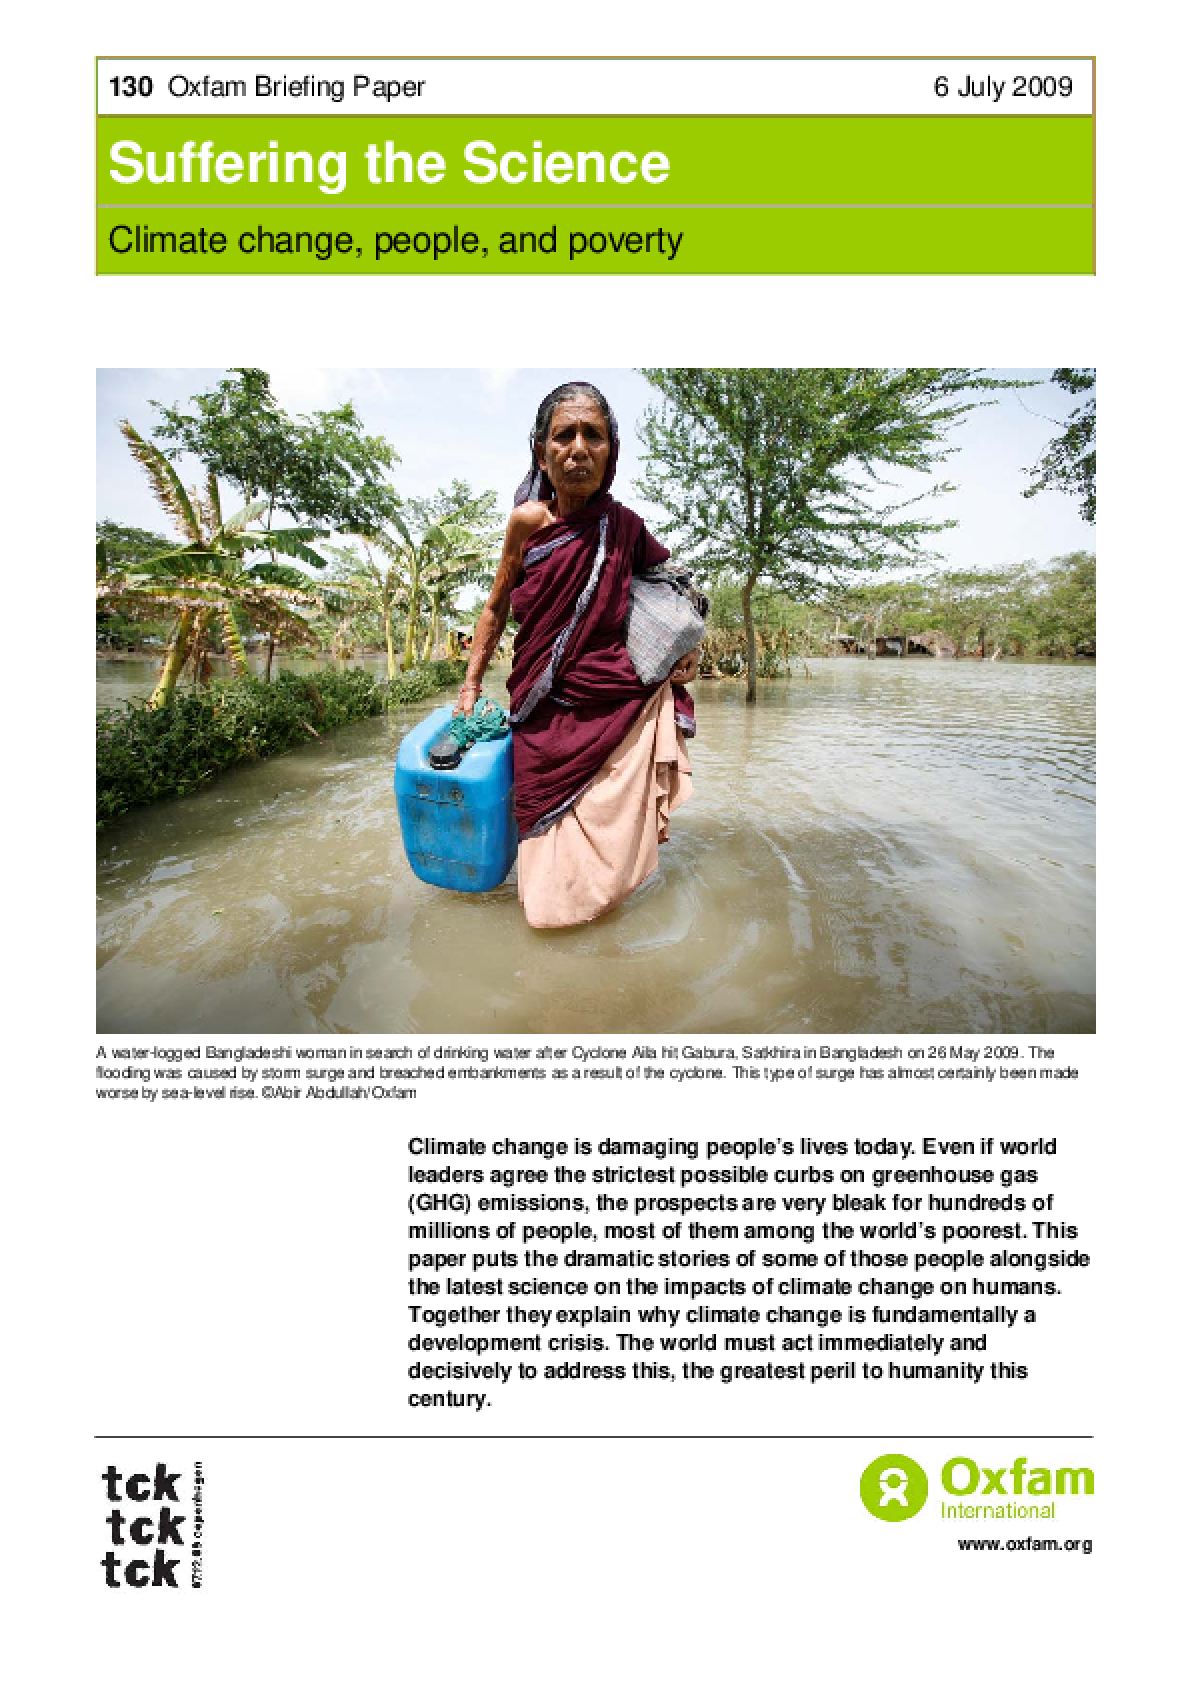 Suffering the Science: Climate change, people, and poverty